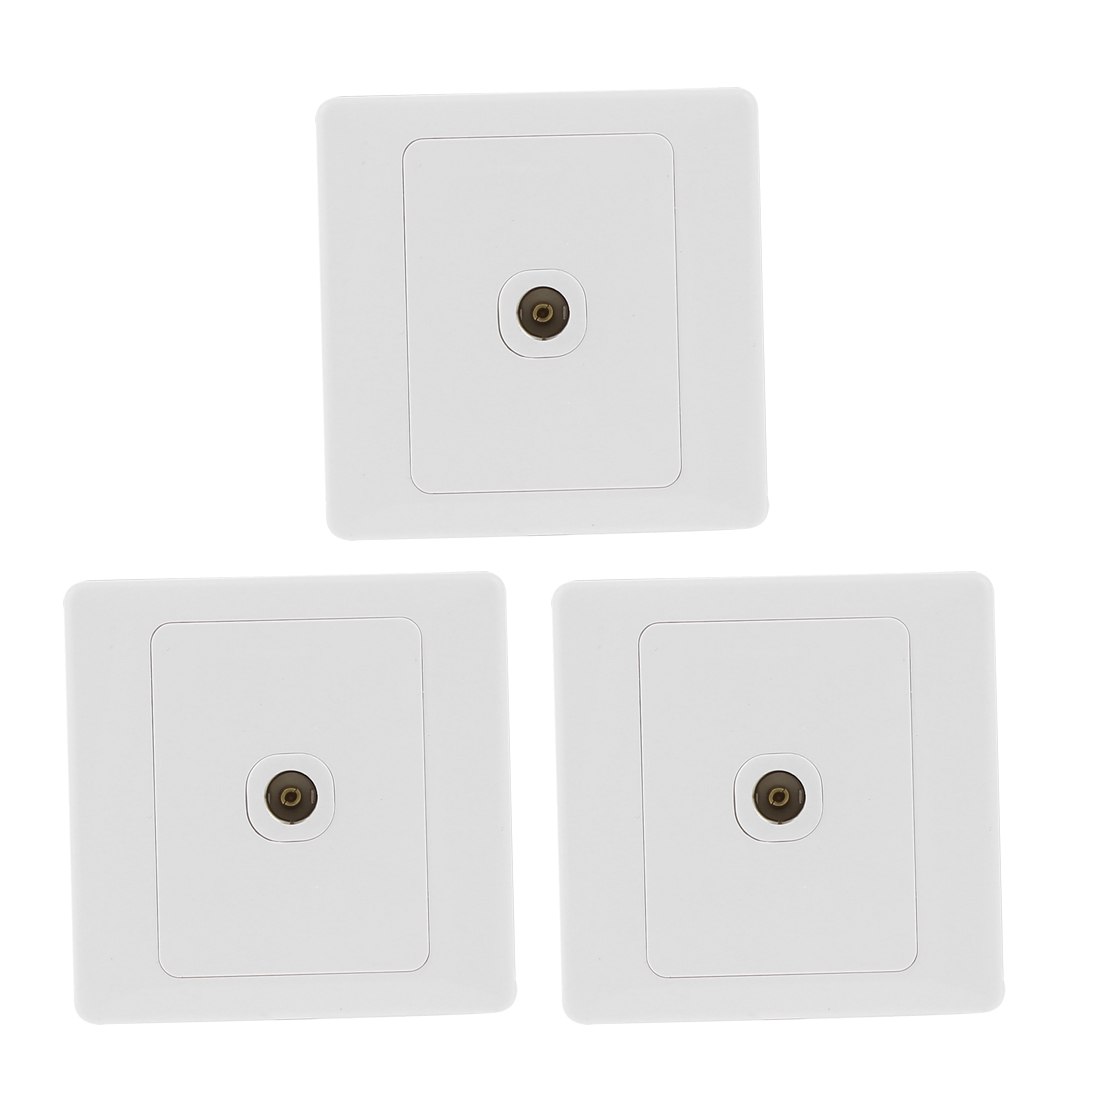 3x TV Port Socket Mounting Coaxial Outlet Wall Plate AC250V 10A